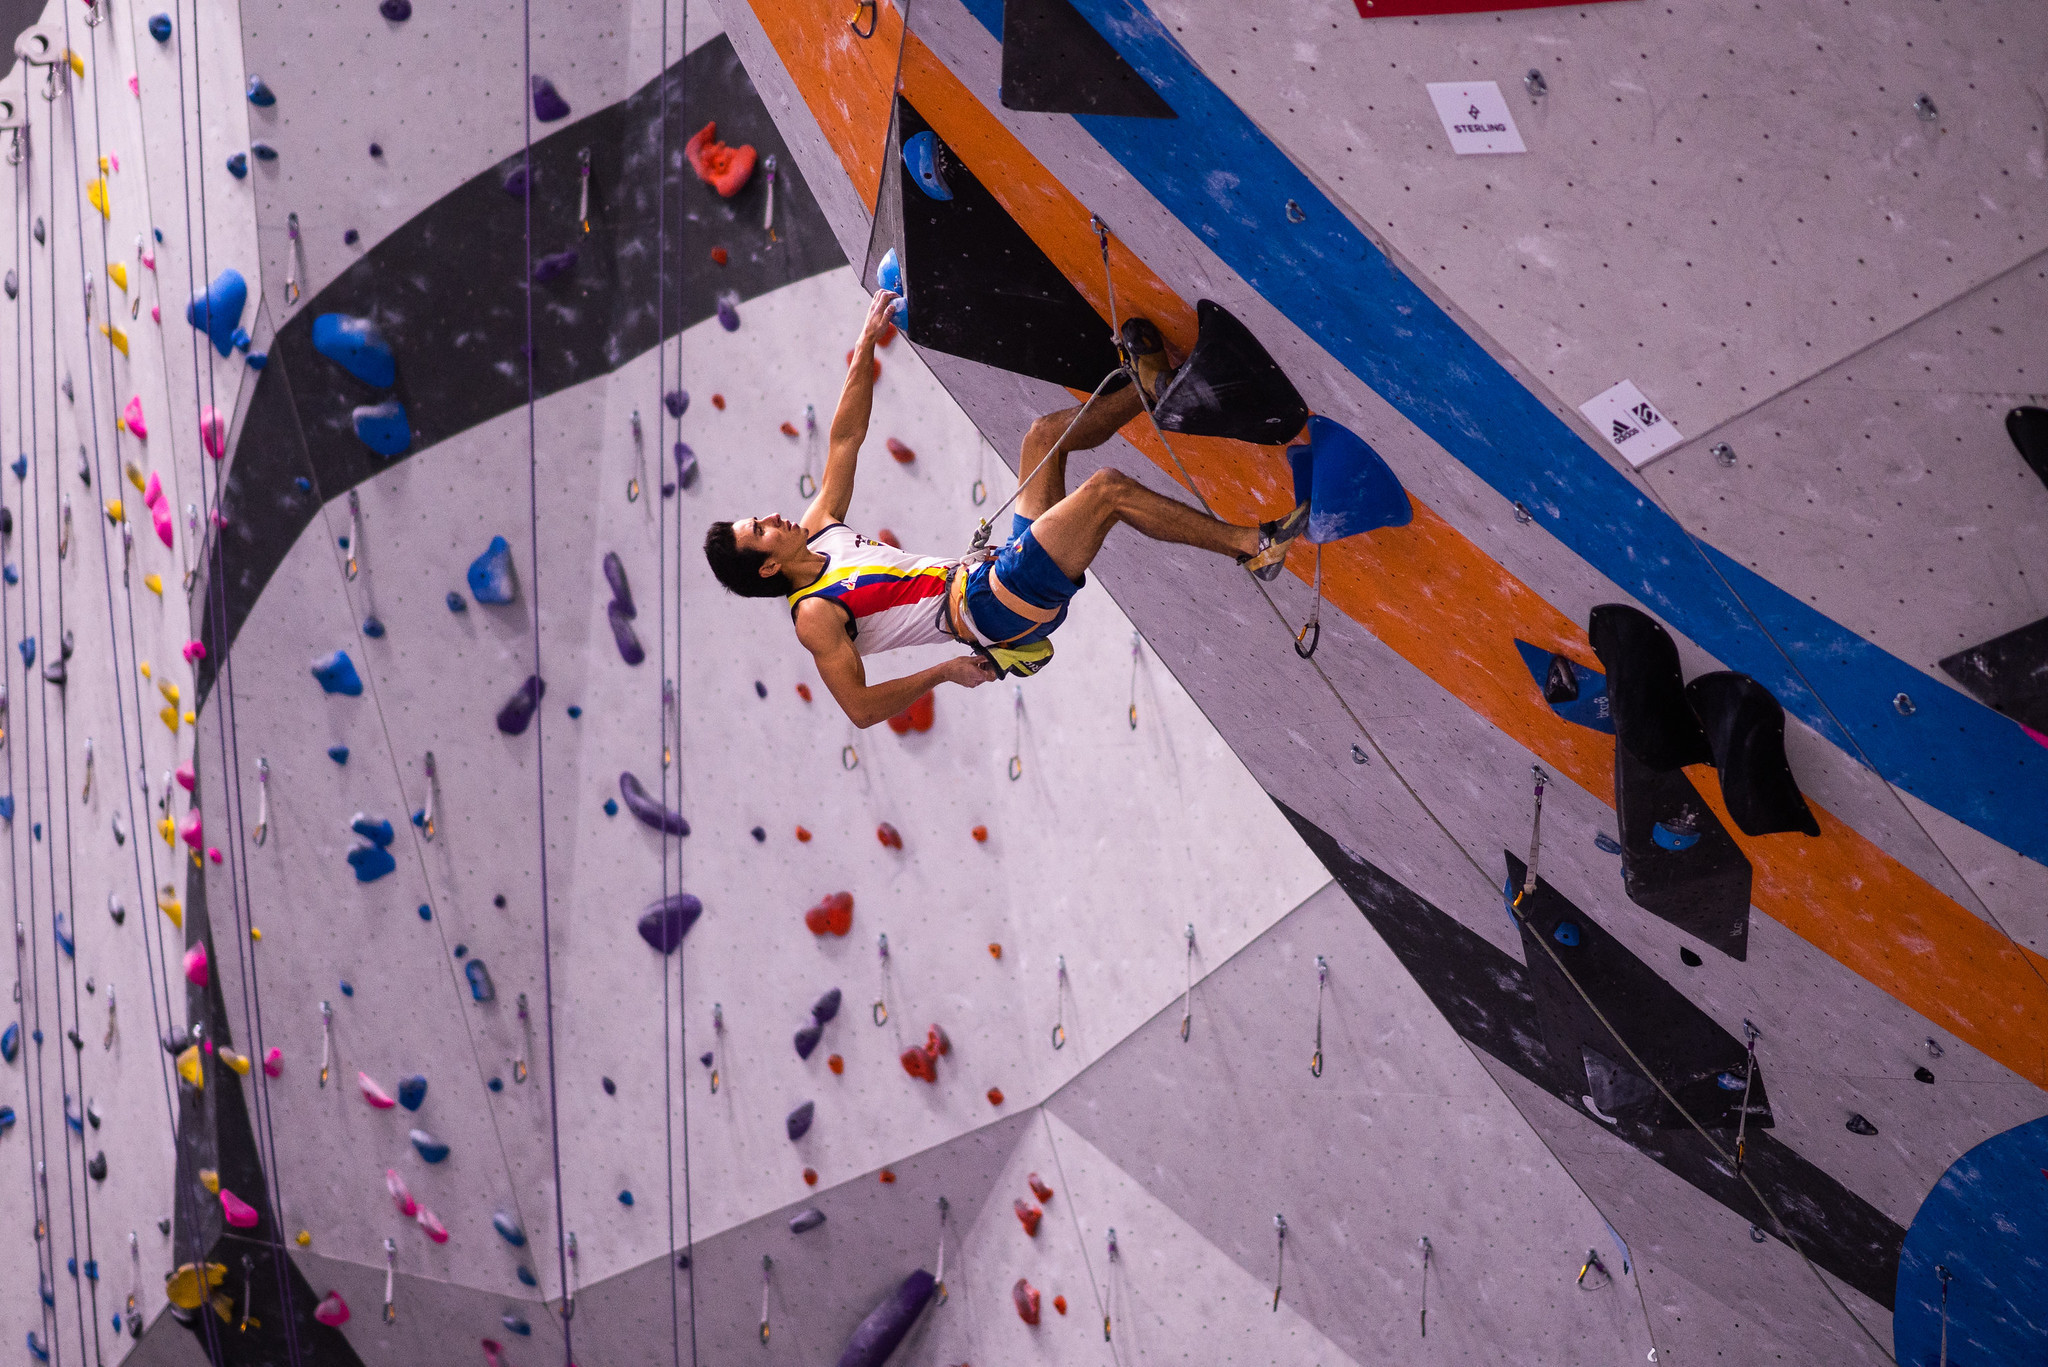 The IFSC hopes the updated rules will allow for the next step to be taken as the sport aims to resume ©IFSC